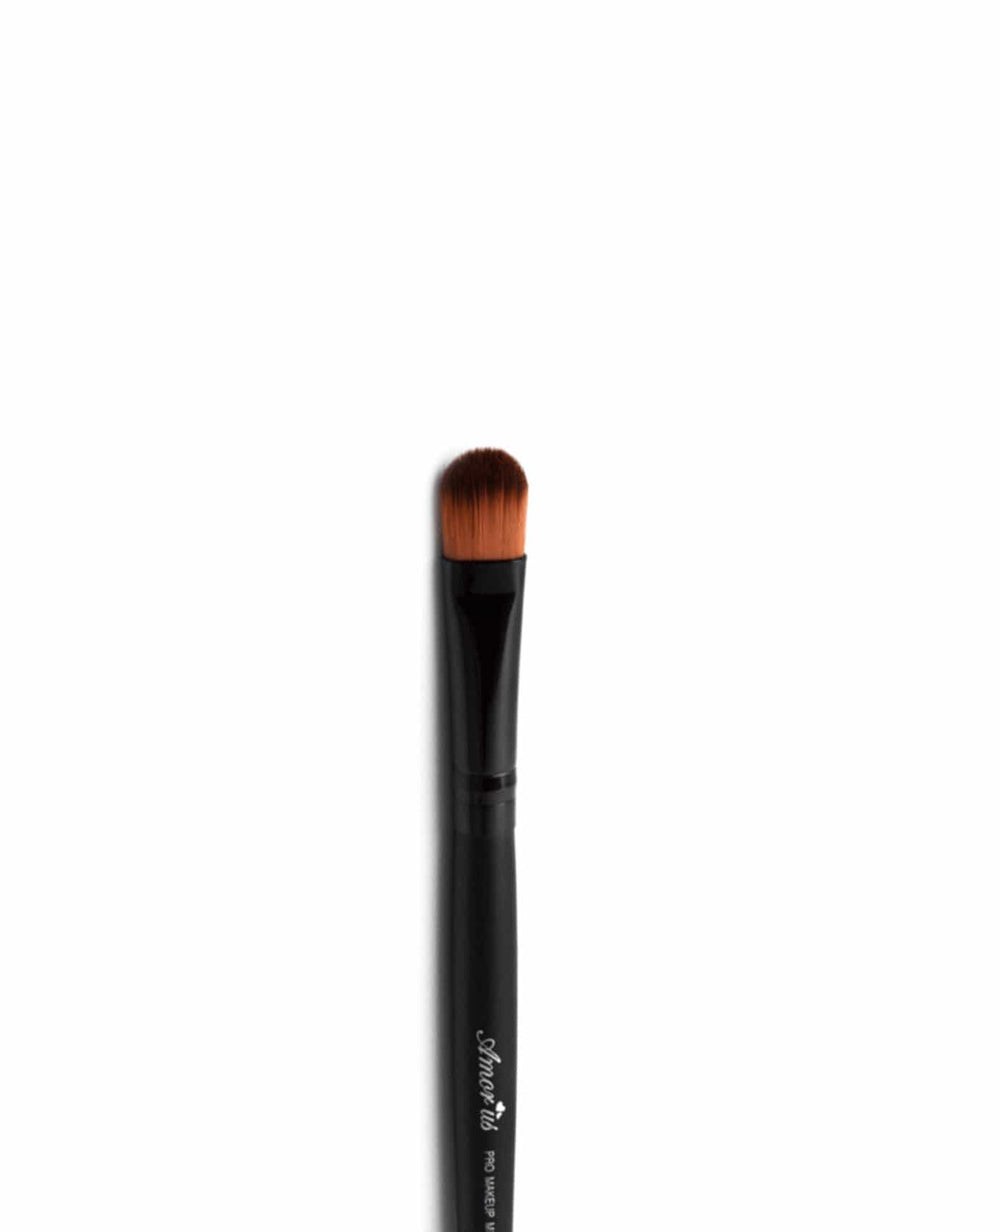 Amor Us Medium Concealer Brush - #910